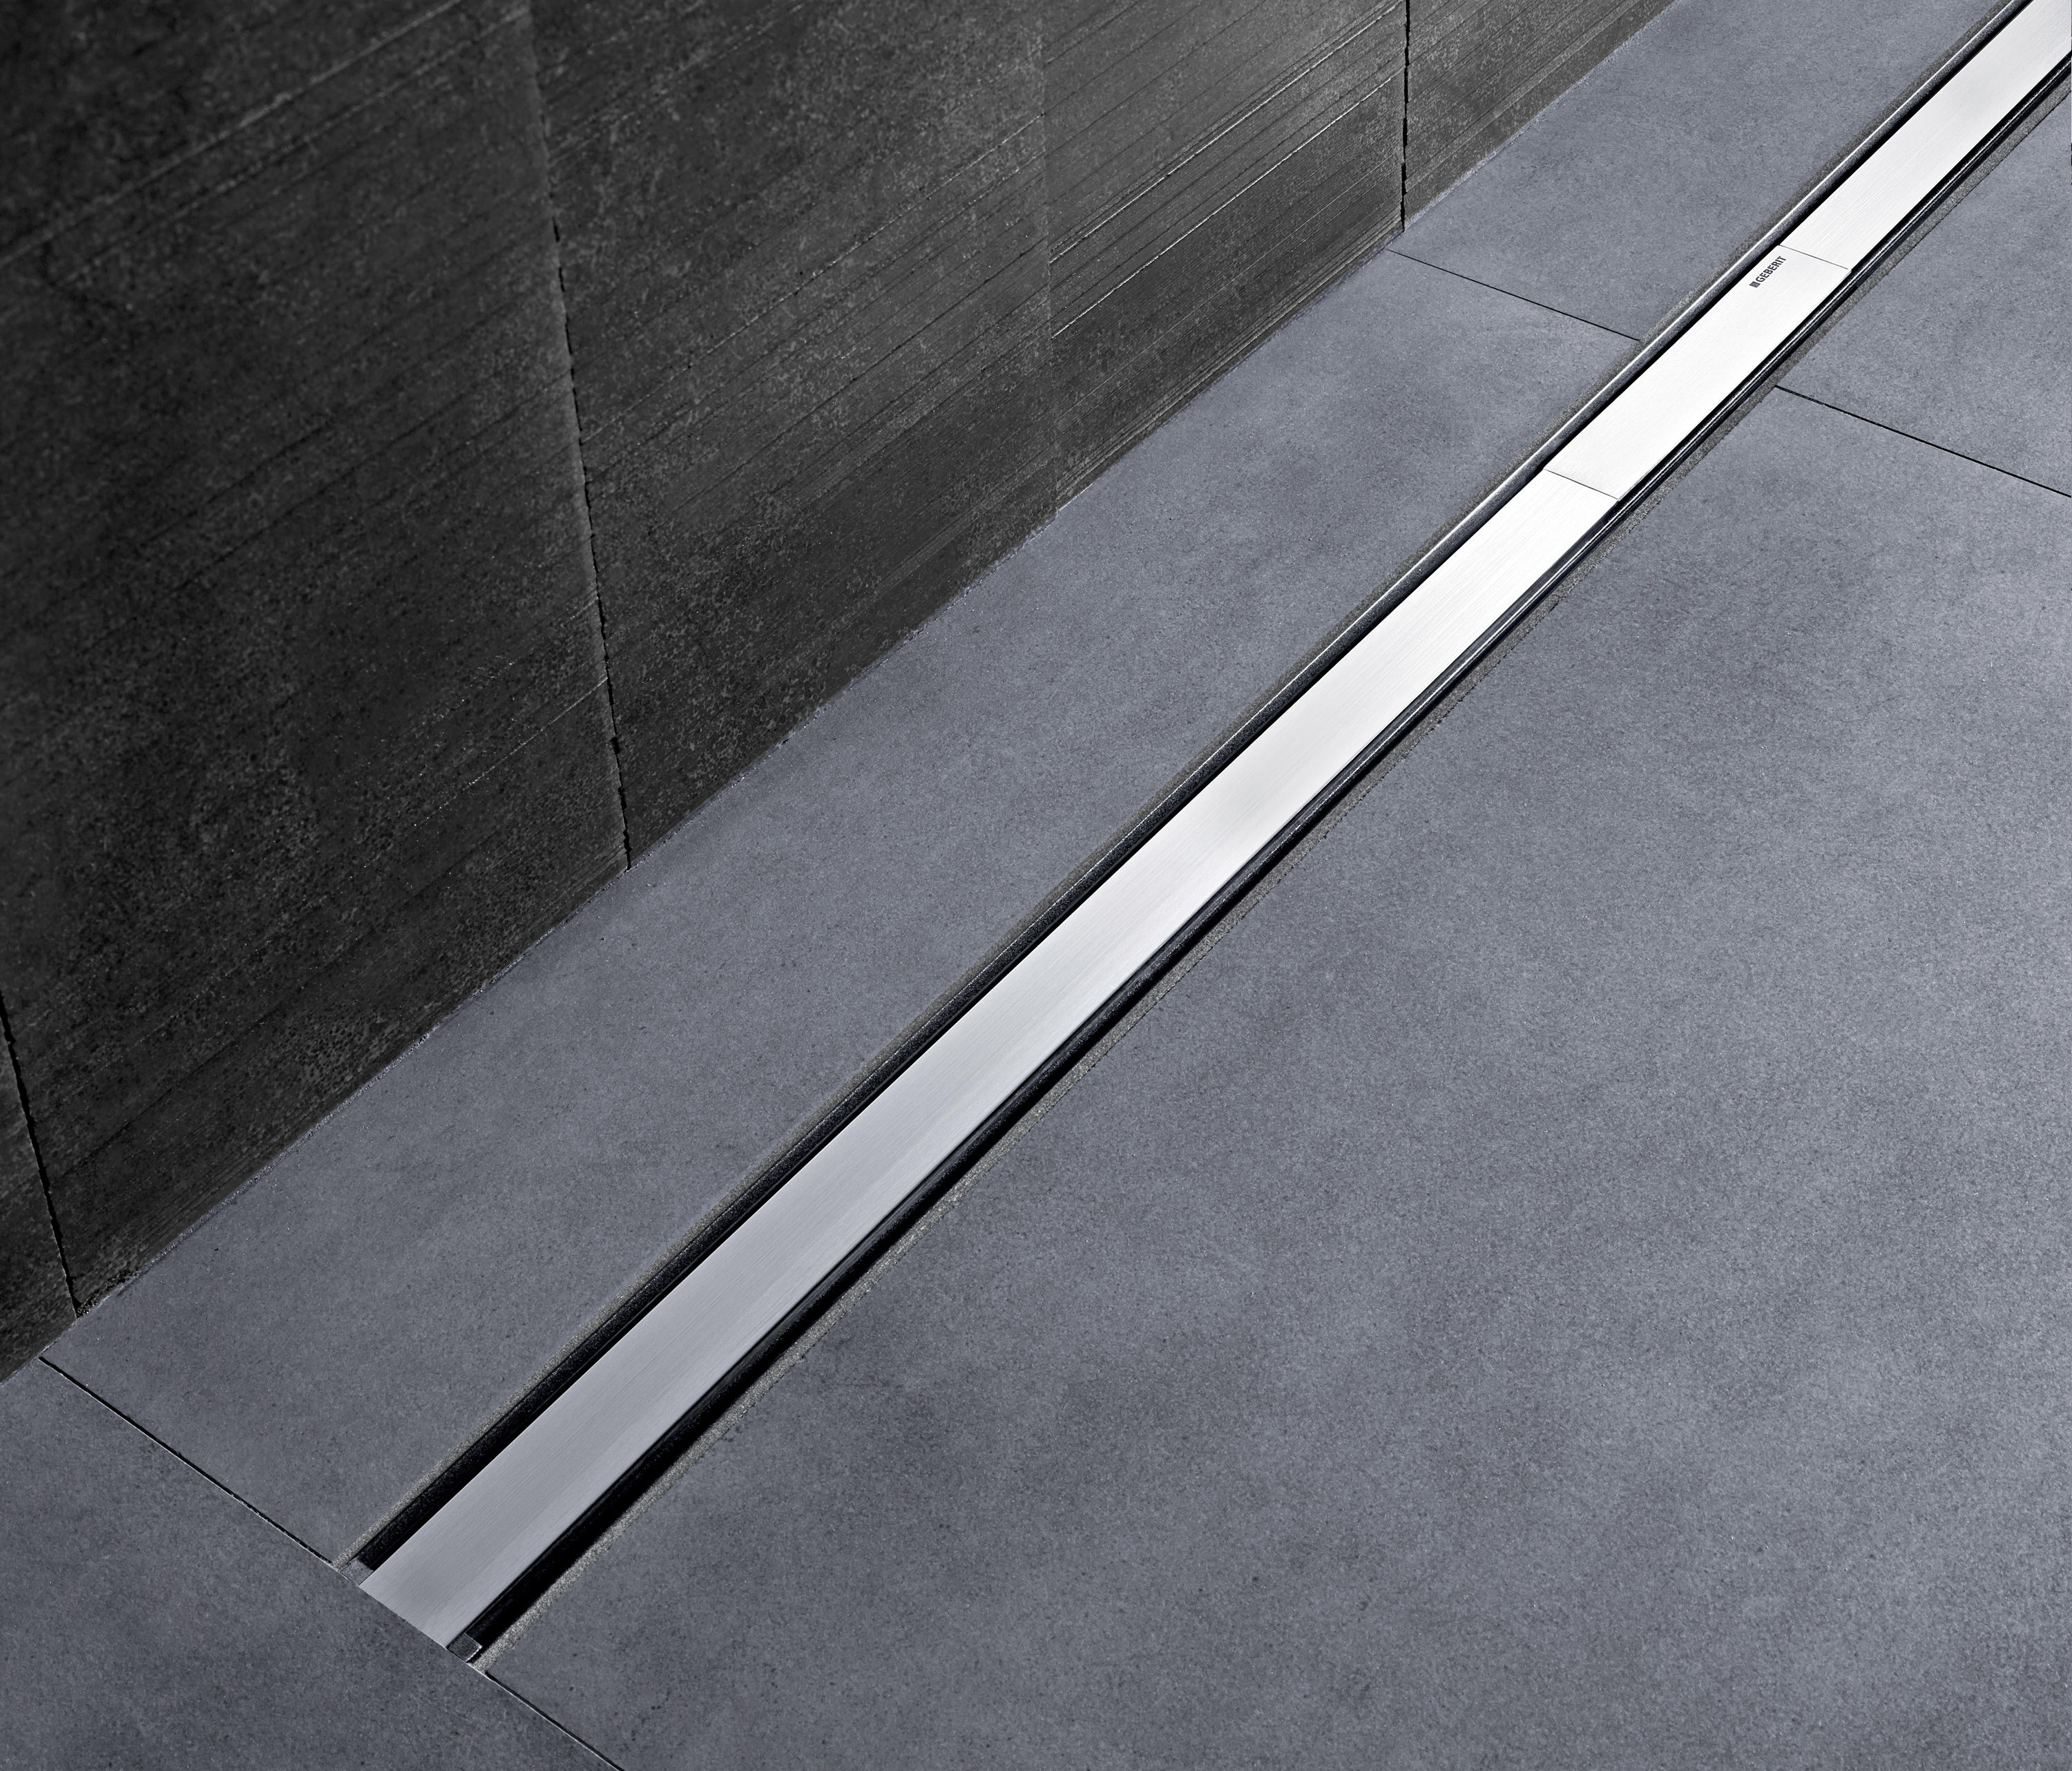 Geberit shower channels cleanline linear drains from geberit architonic - Bodenablauf einfliesen ...